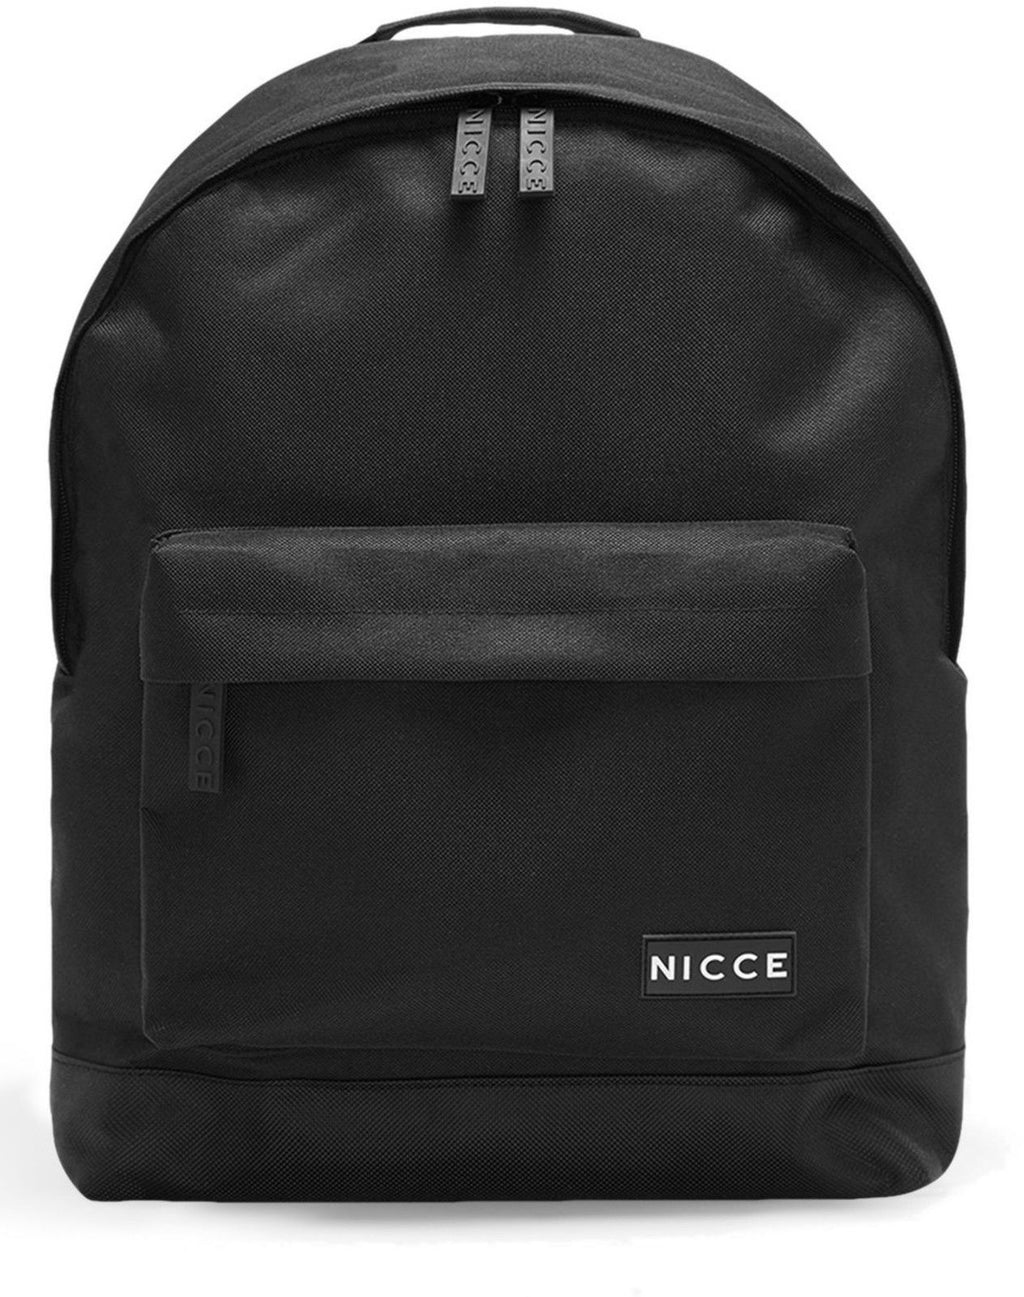 NICCE Raif Backpack Bag And Pencil Case Set Black